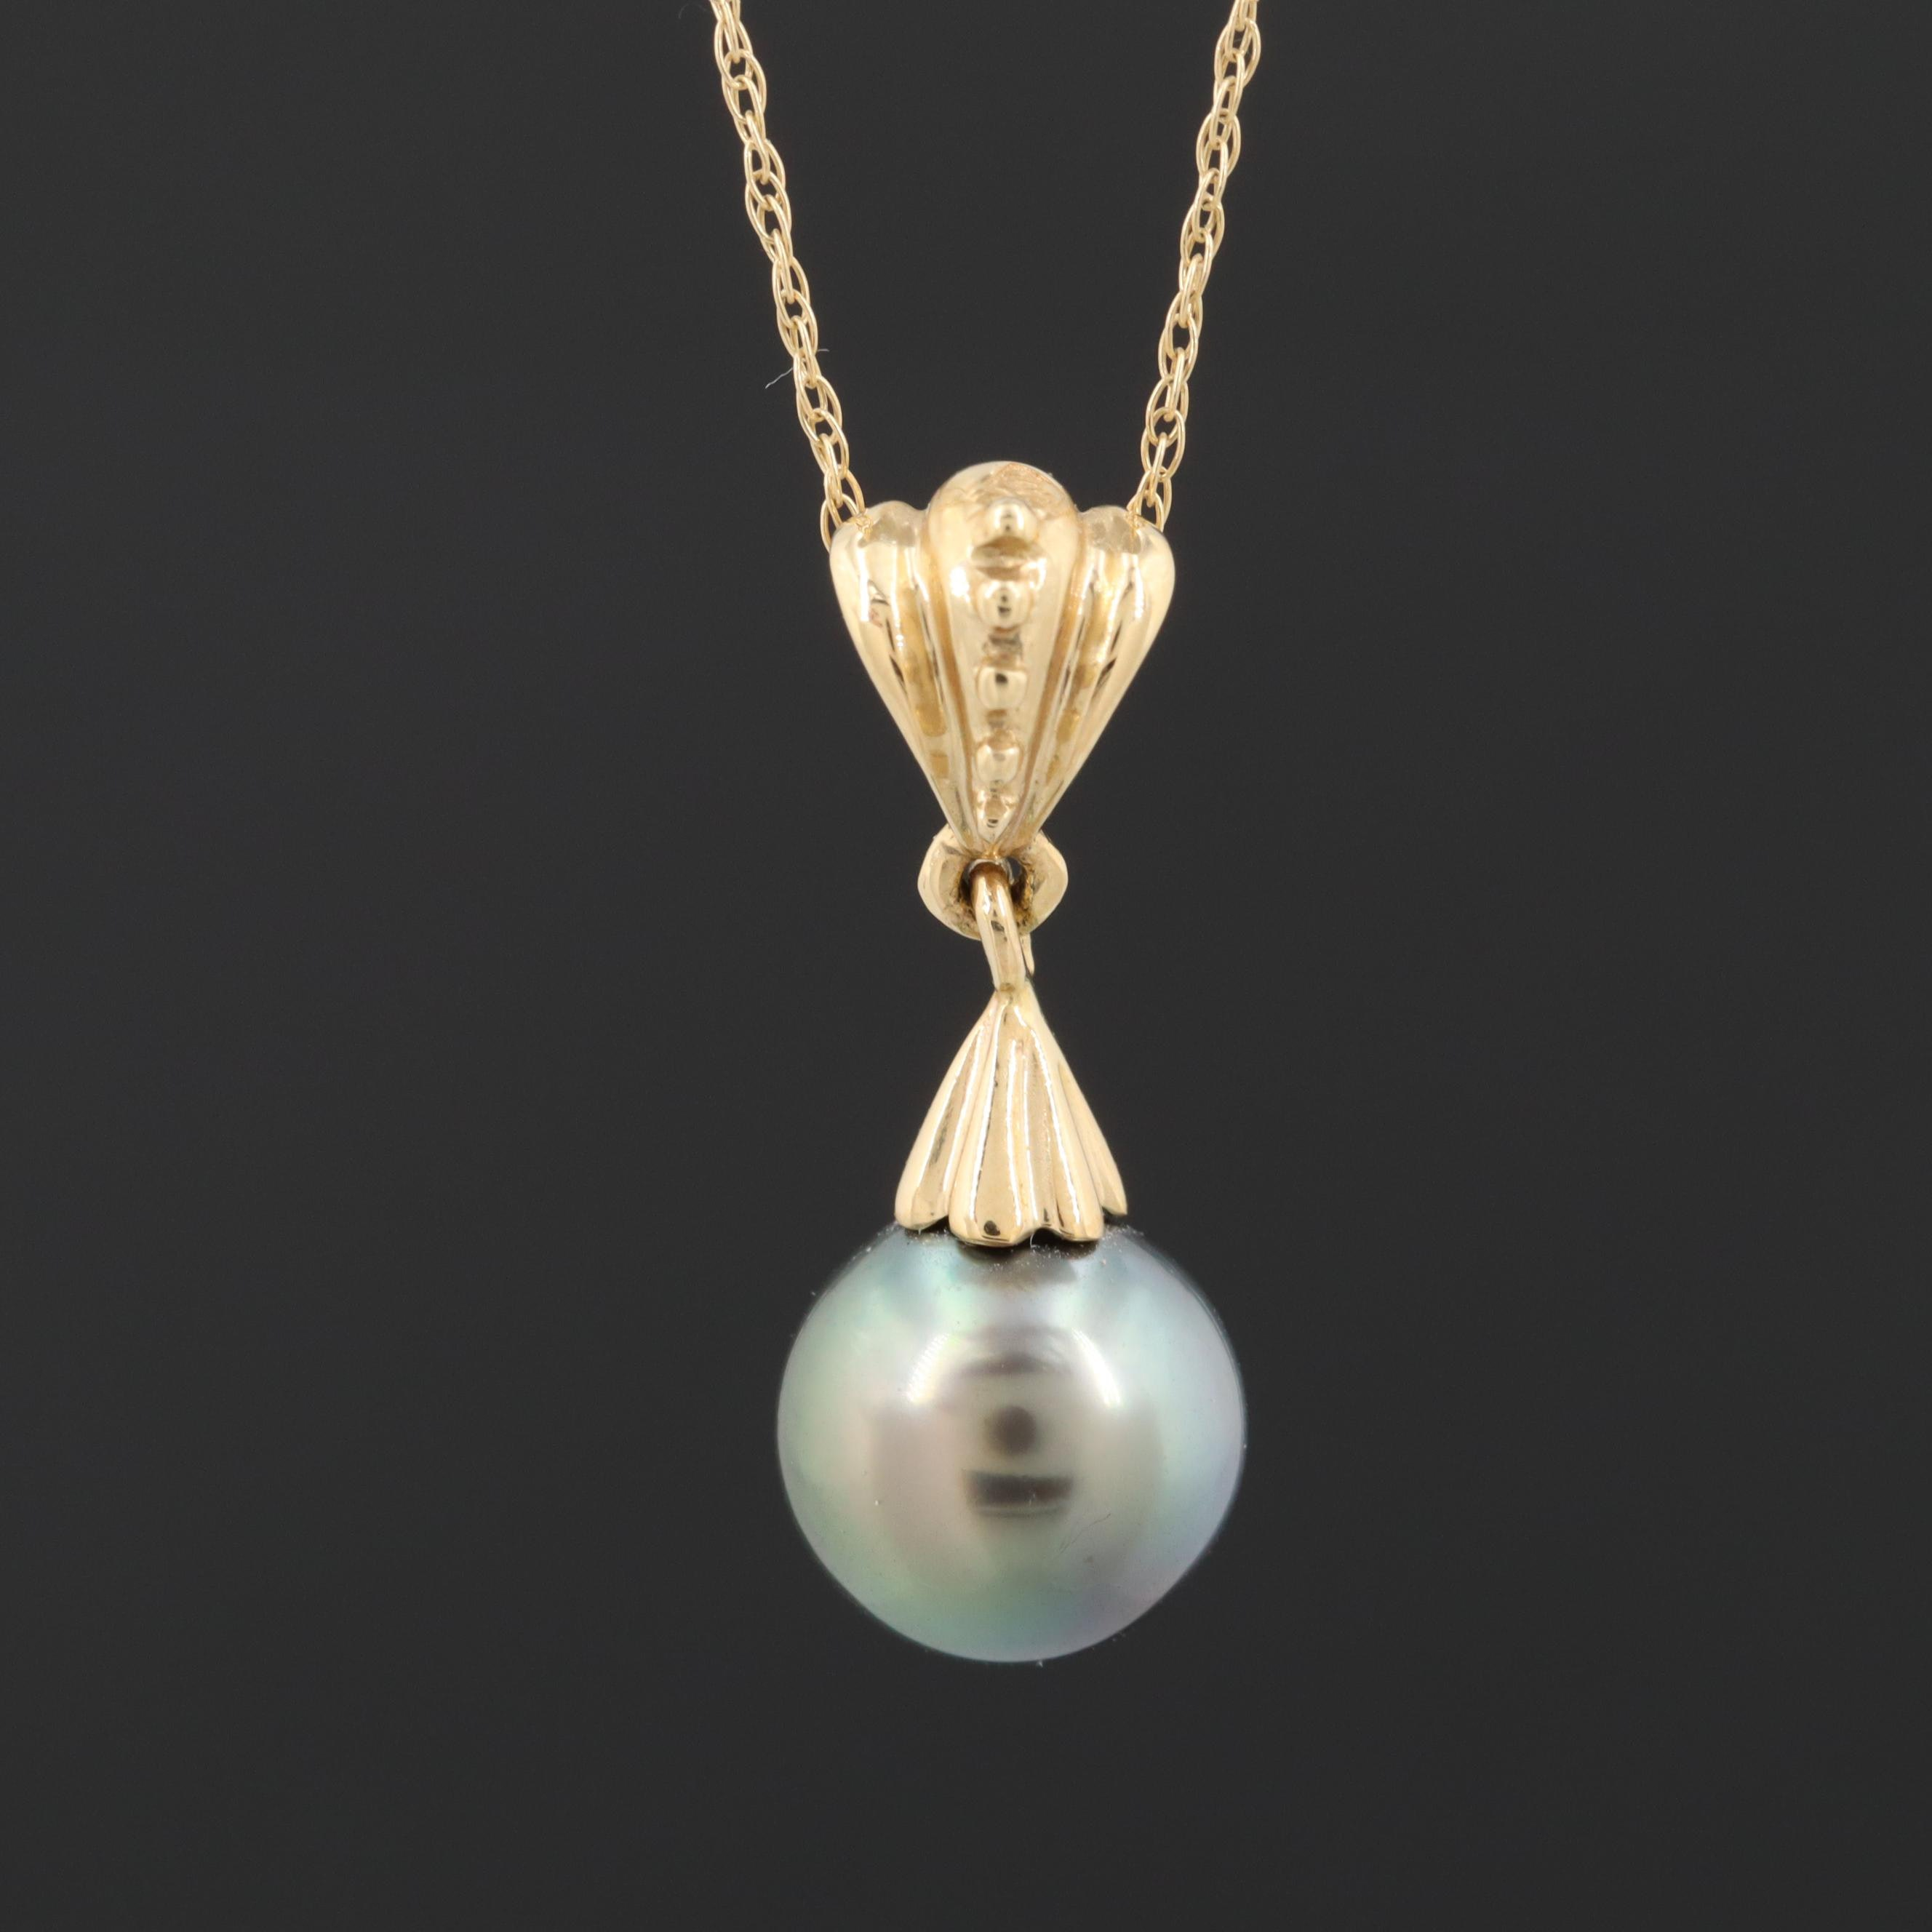 14K Yellow Gold Black Cultured Pearl Pendant Necklace